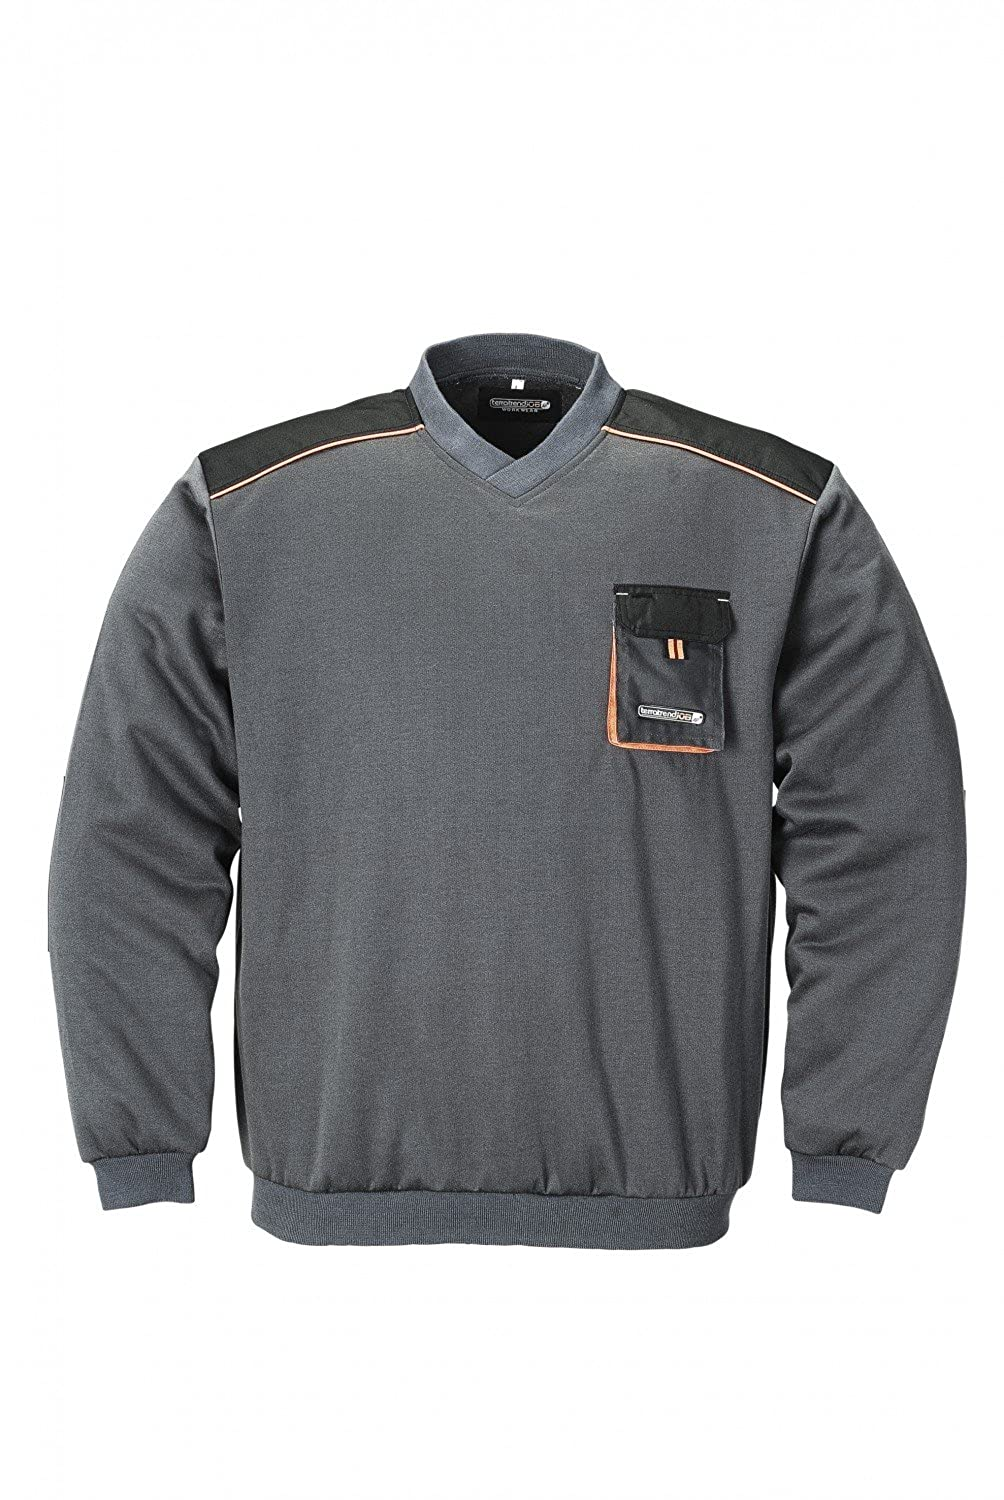 Terratrend Job Jumper, Grey